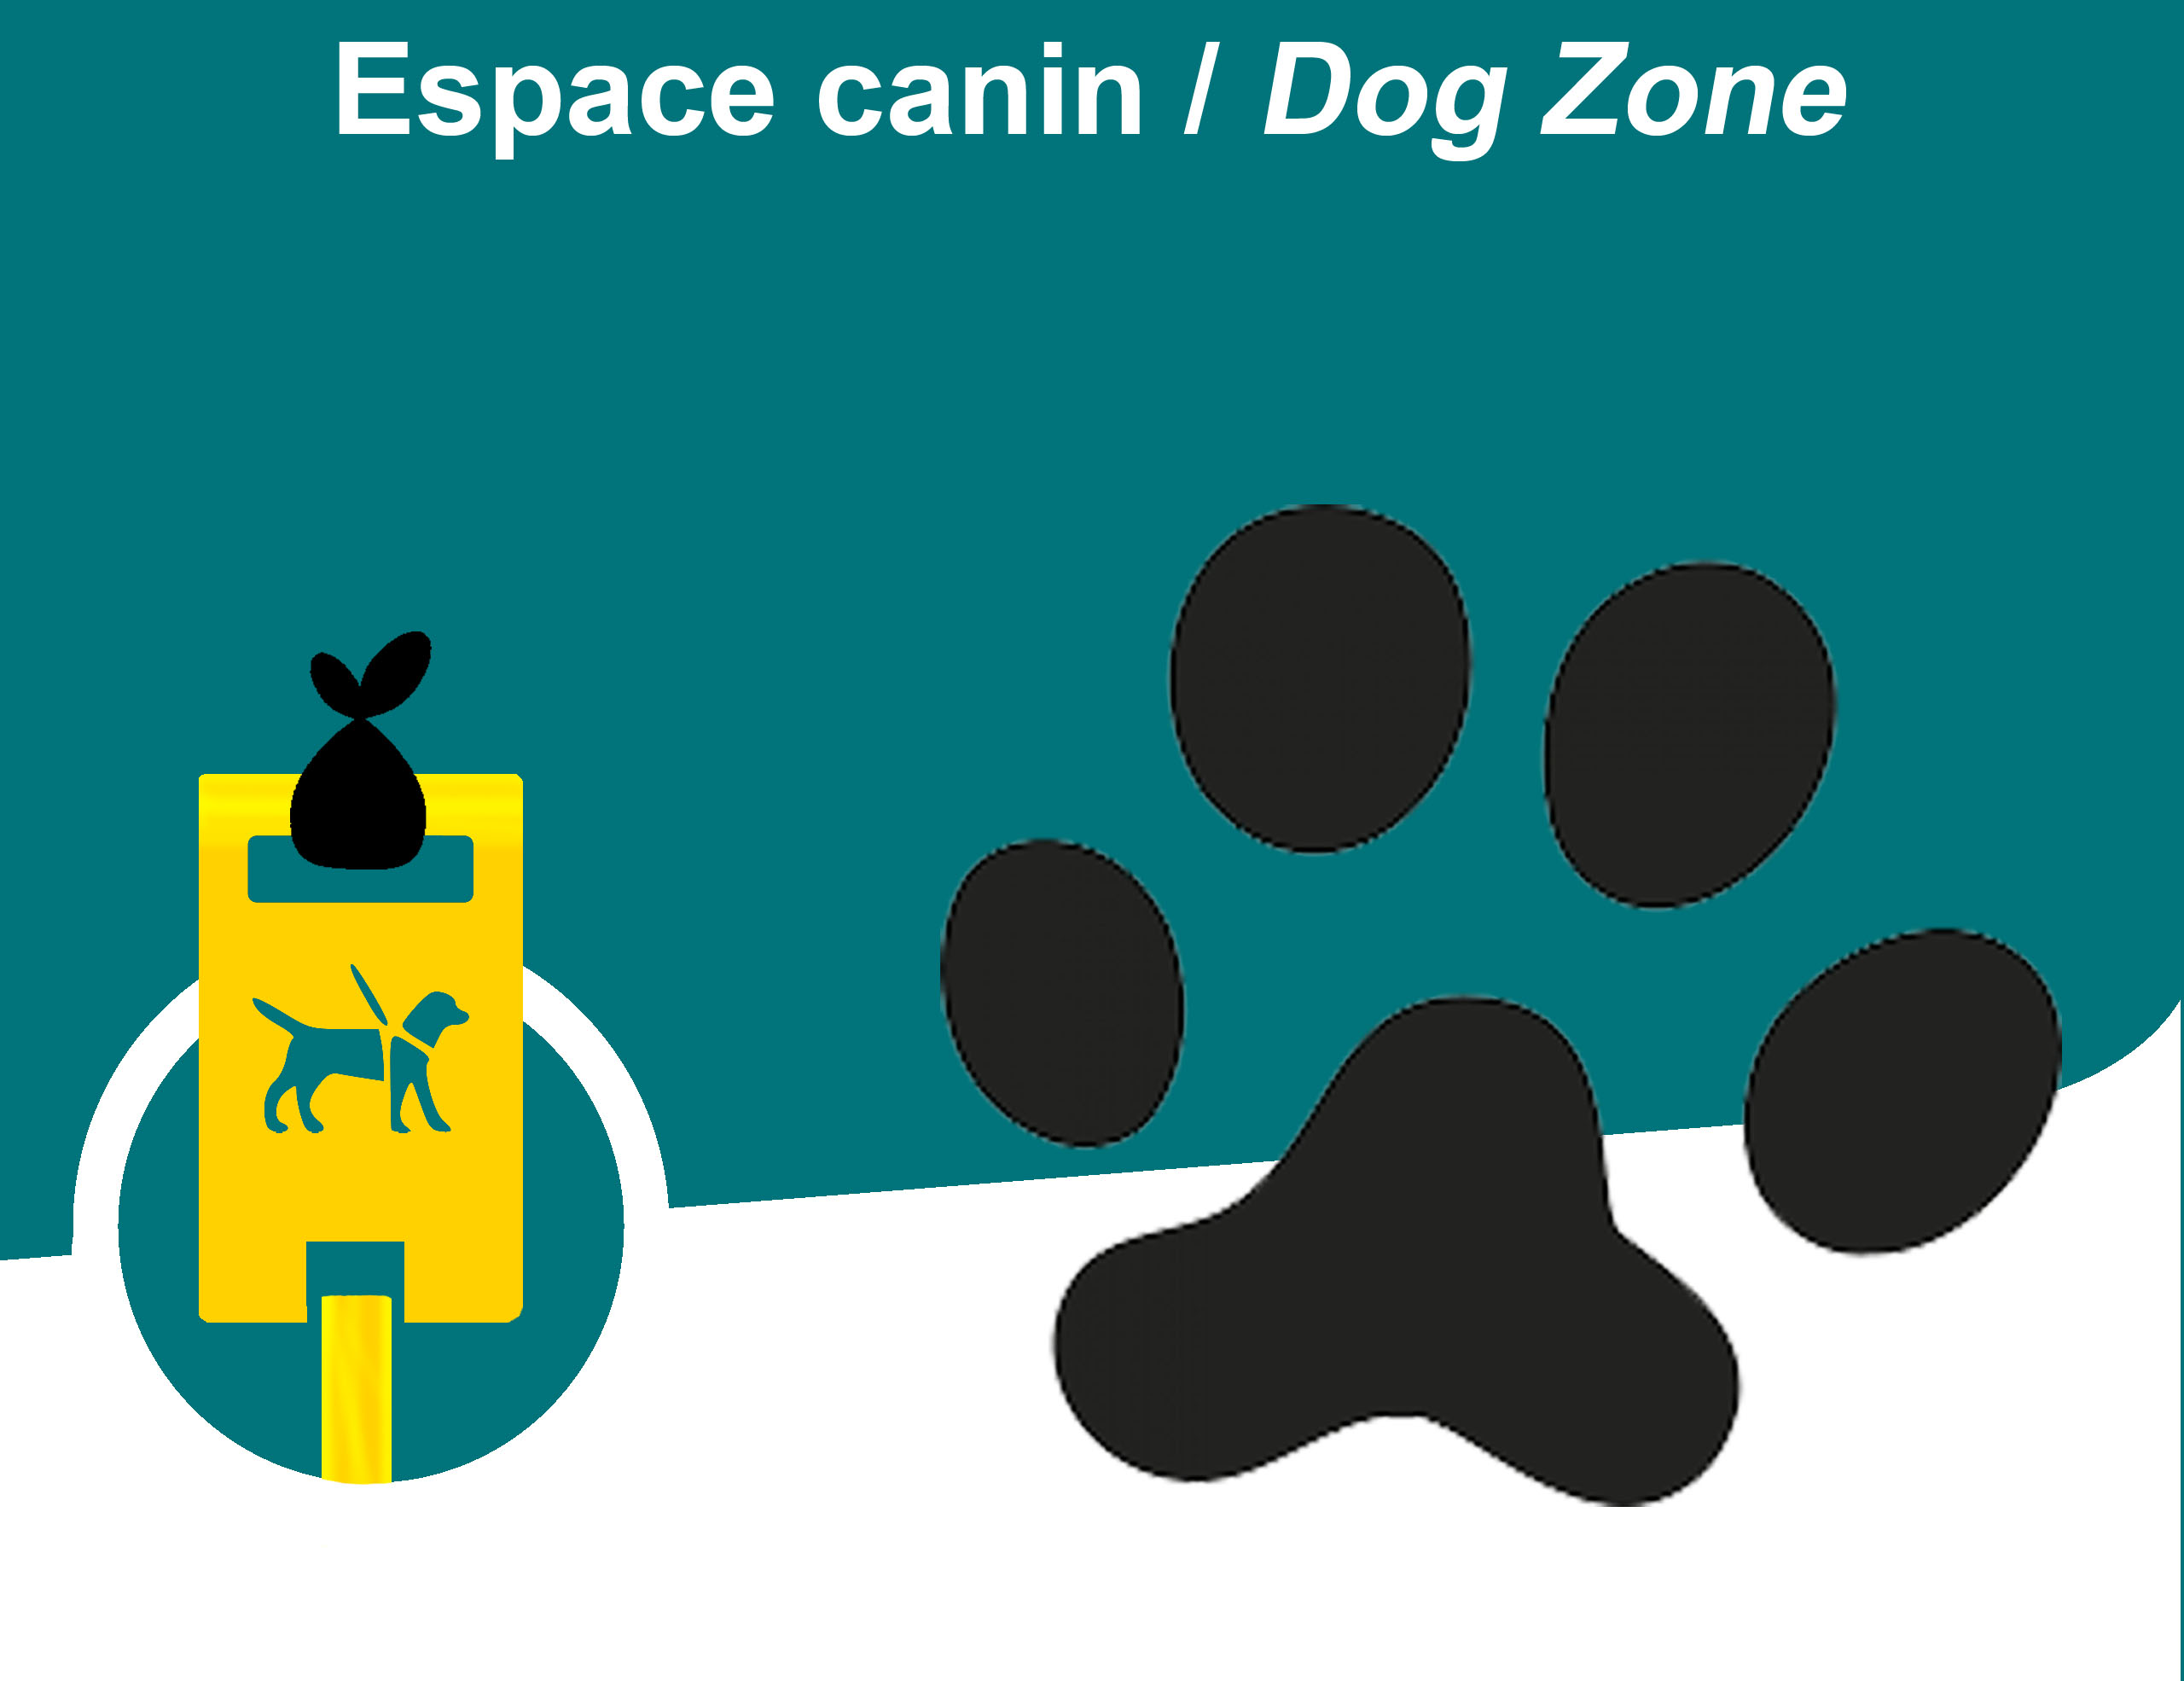 For Our Four Legged Friends Several Dog Zones Are Set Up Near The Boarding Lines And Services Points In Immediate Vicinity Of Building